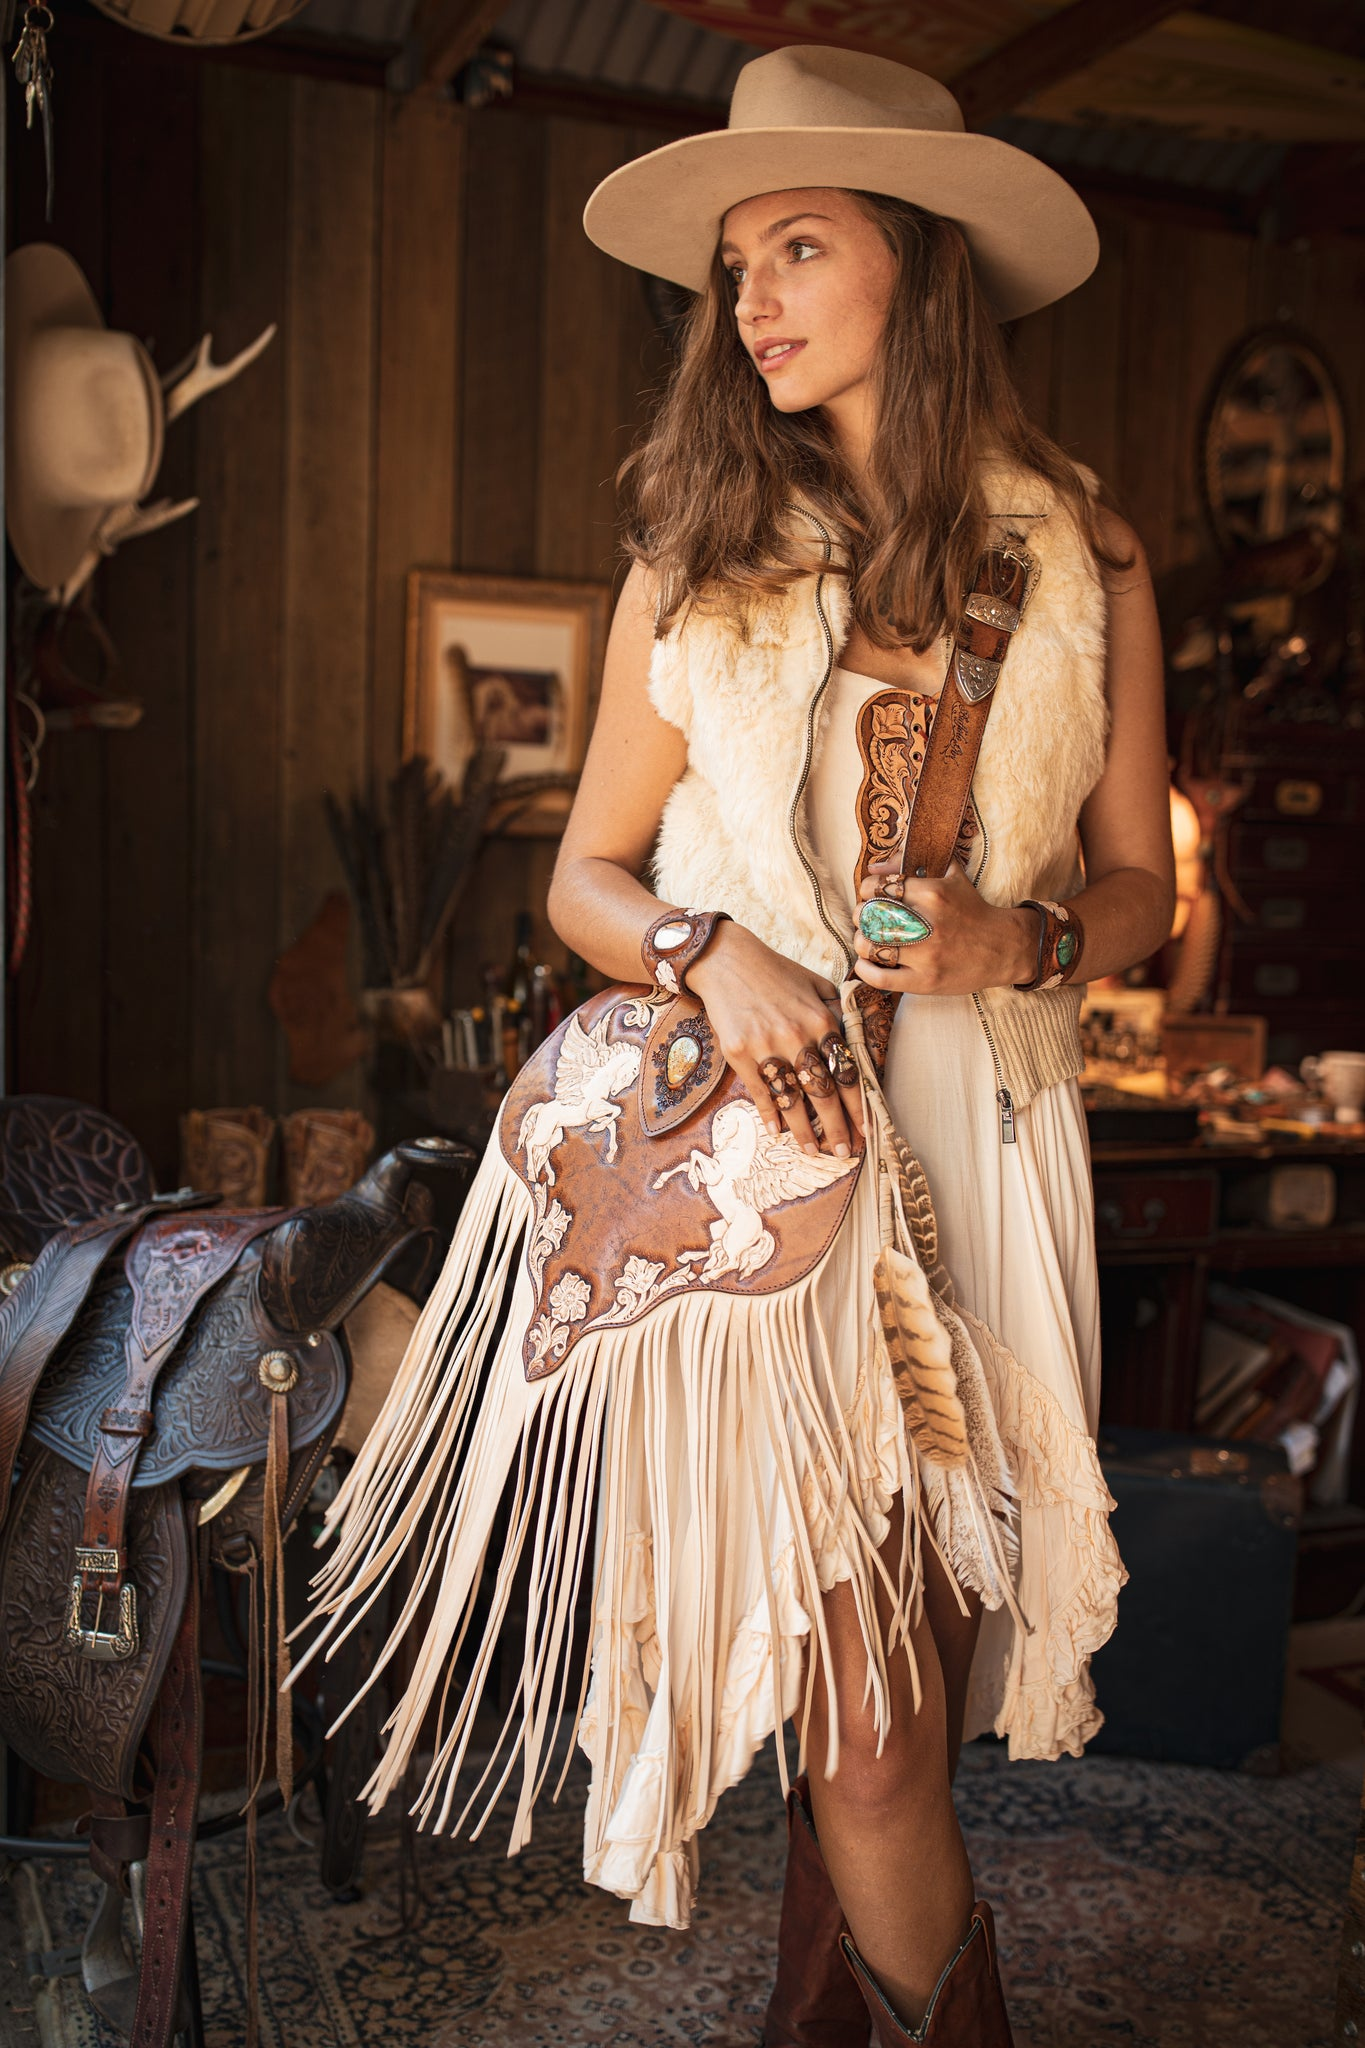 Cowgirl wearing handmade leather bag with painted pegasus and white tassels